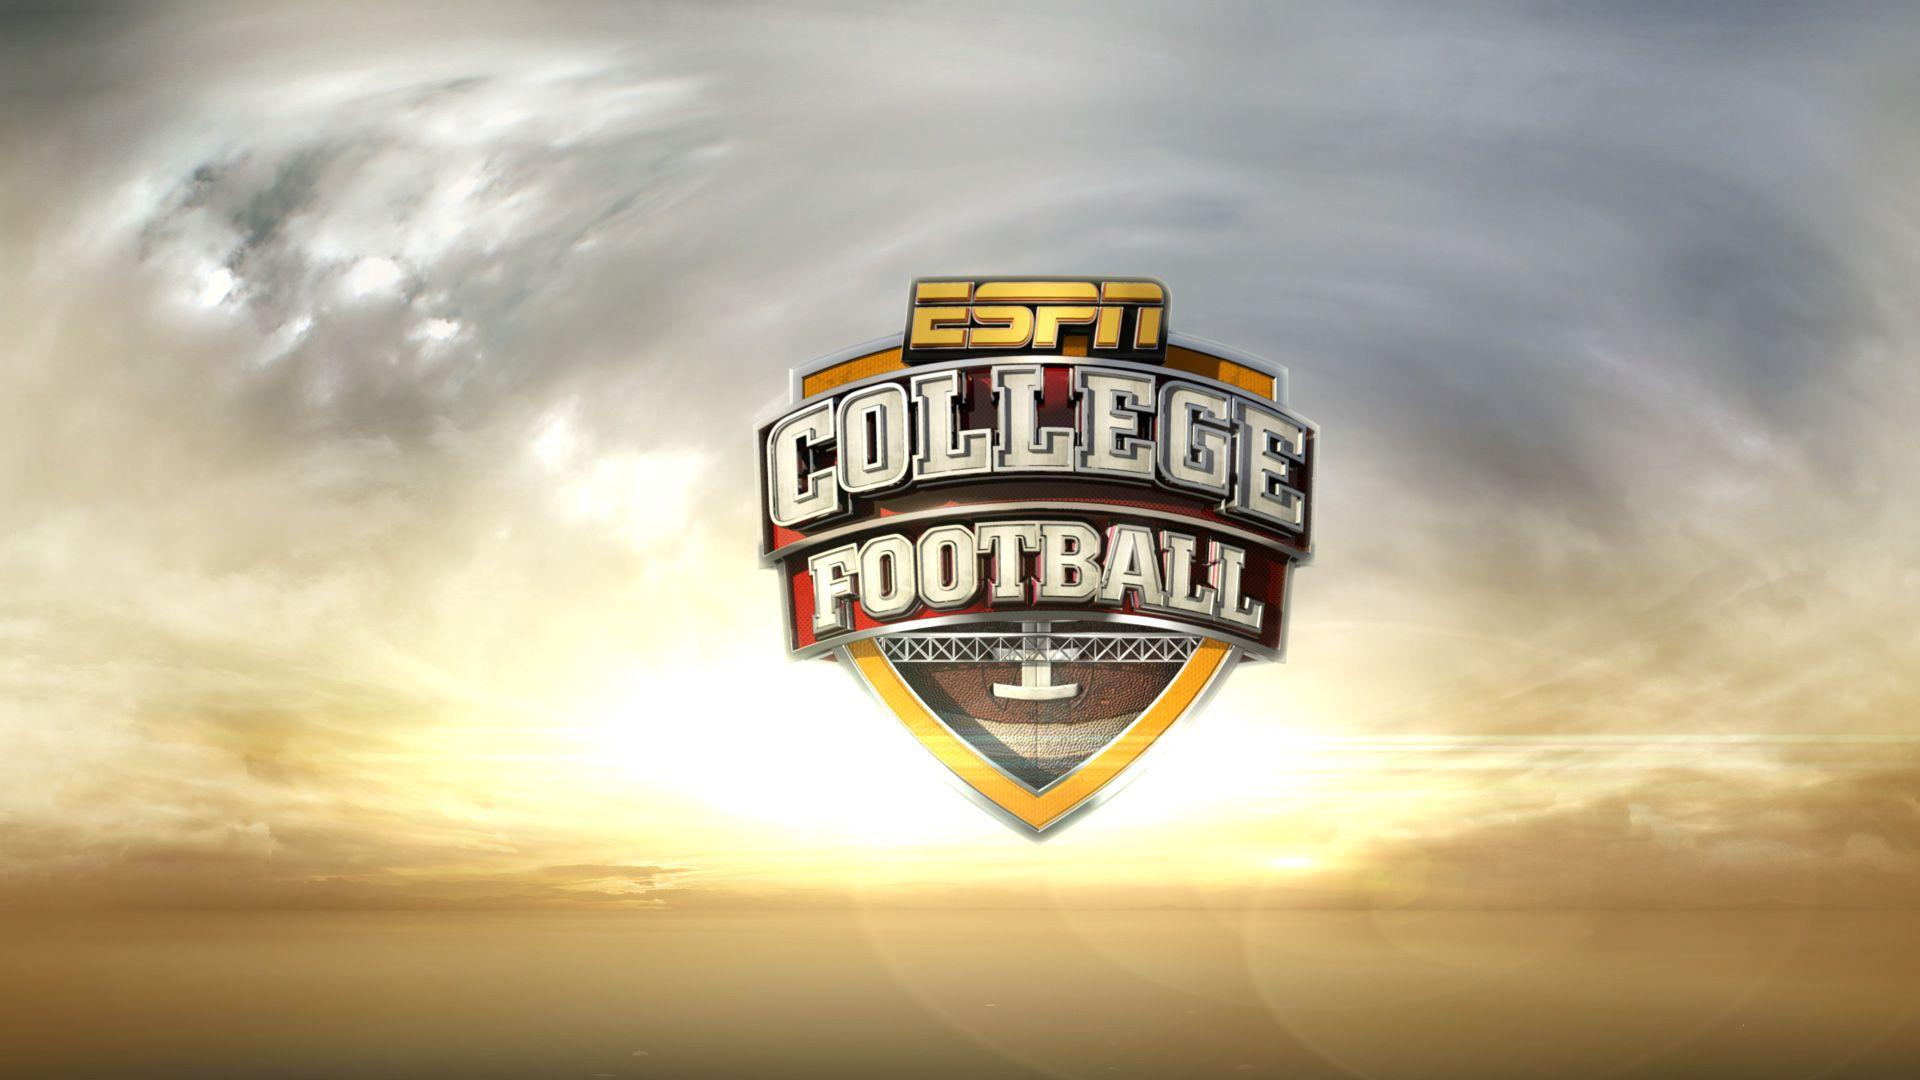 Ncaa College Football Wallpaper: ESPN College Football Wallpapers